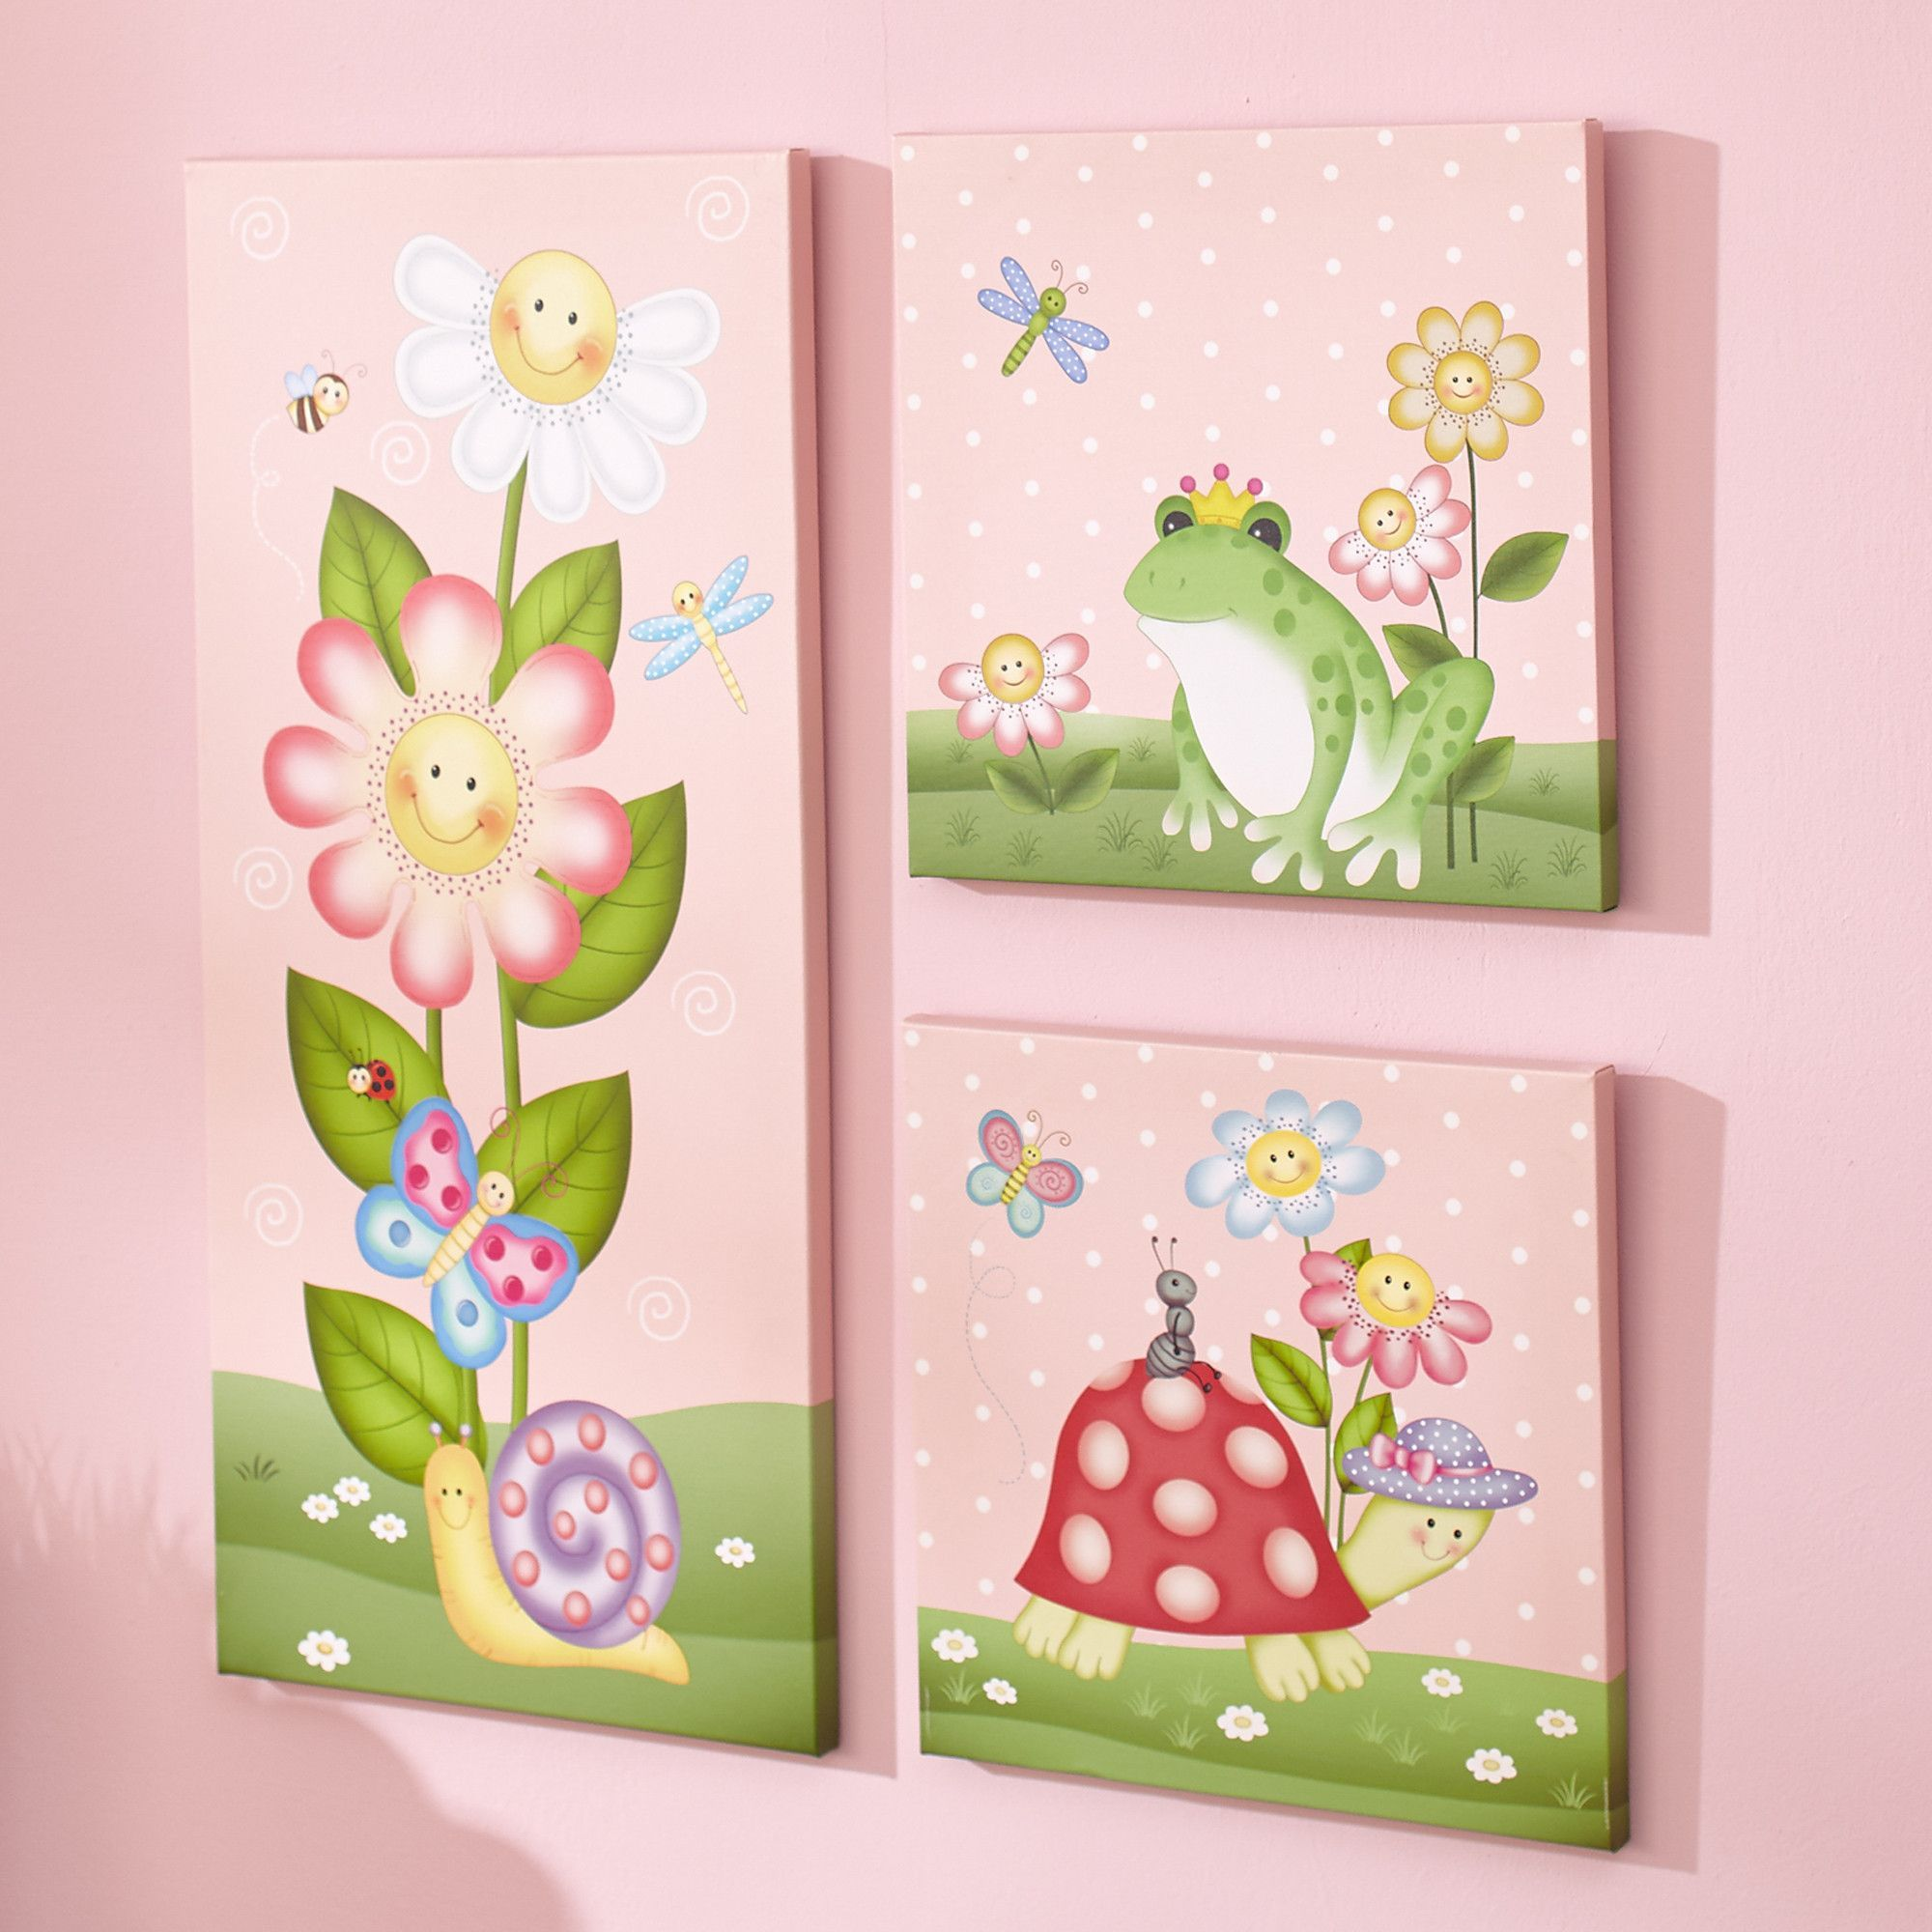 Bring Home The Magic Of The Magic Garden Wall Art To Your Nursery Today Whimsical Flowers Insects And Kids Canvas Wall Art Canvas Wall Art Set Art Wall Kids